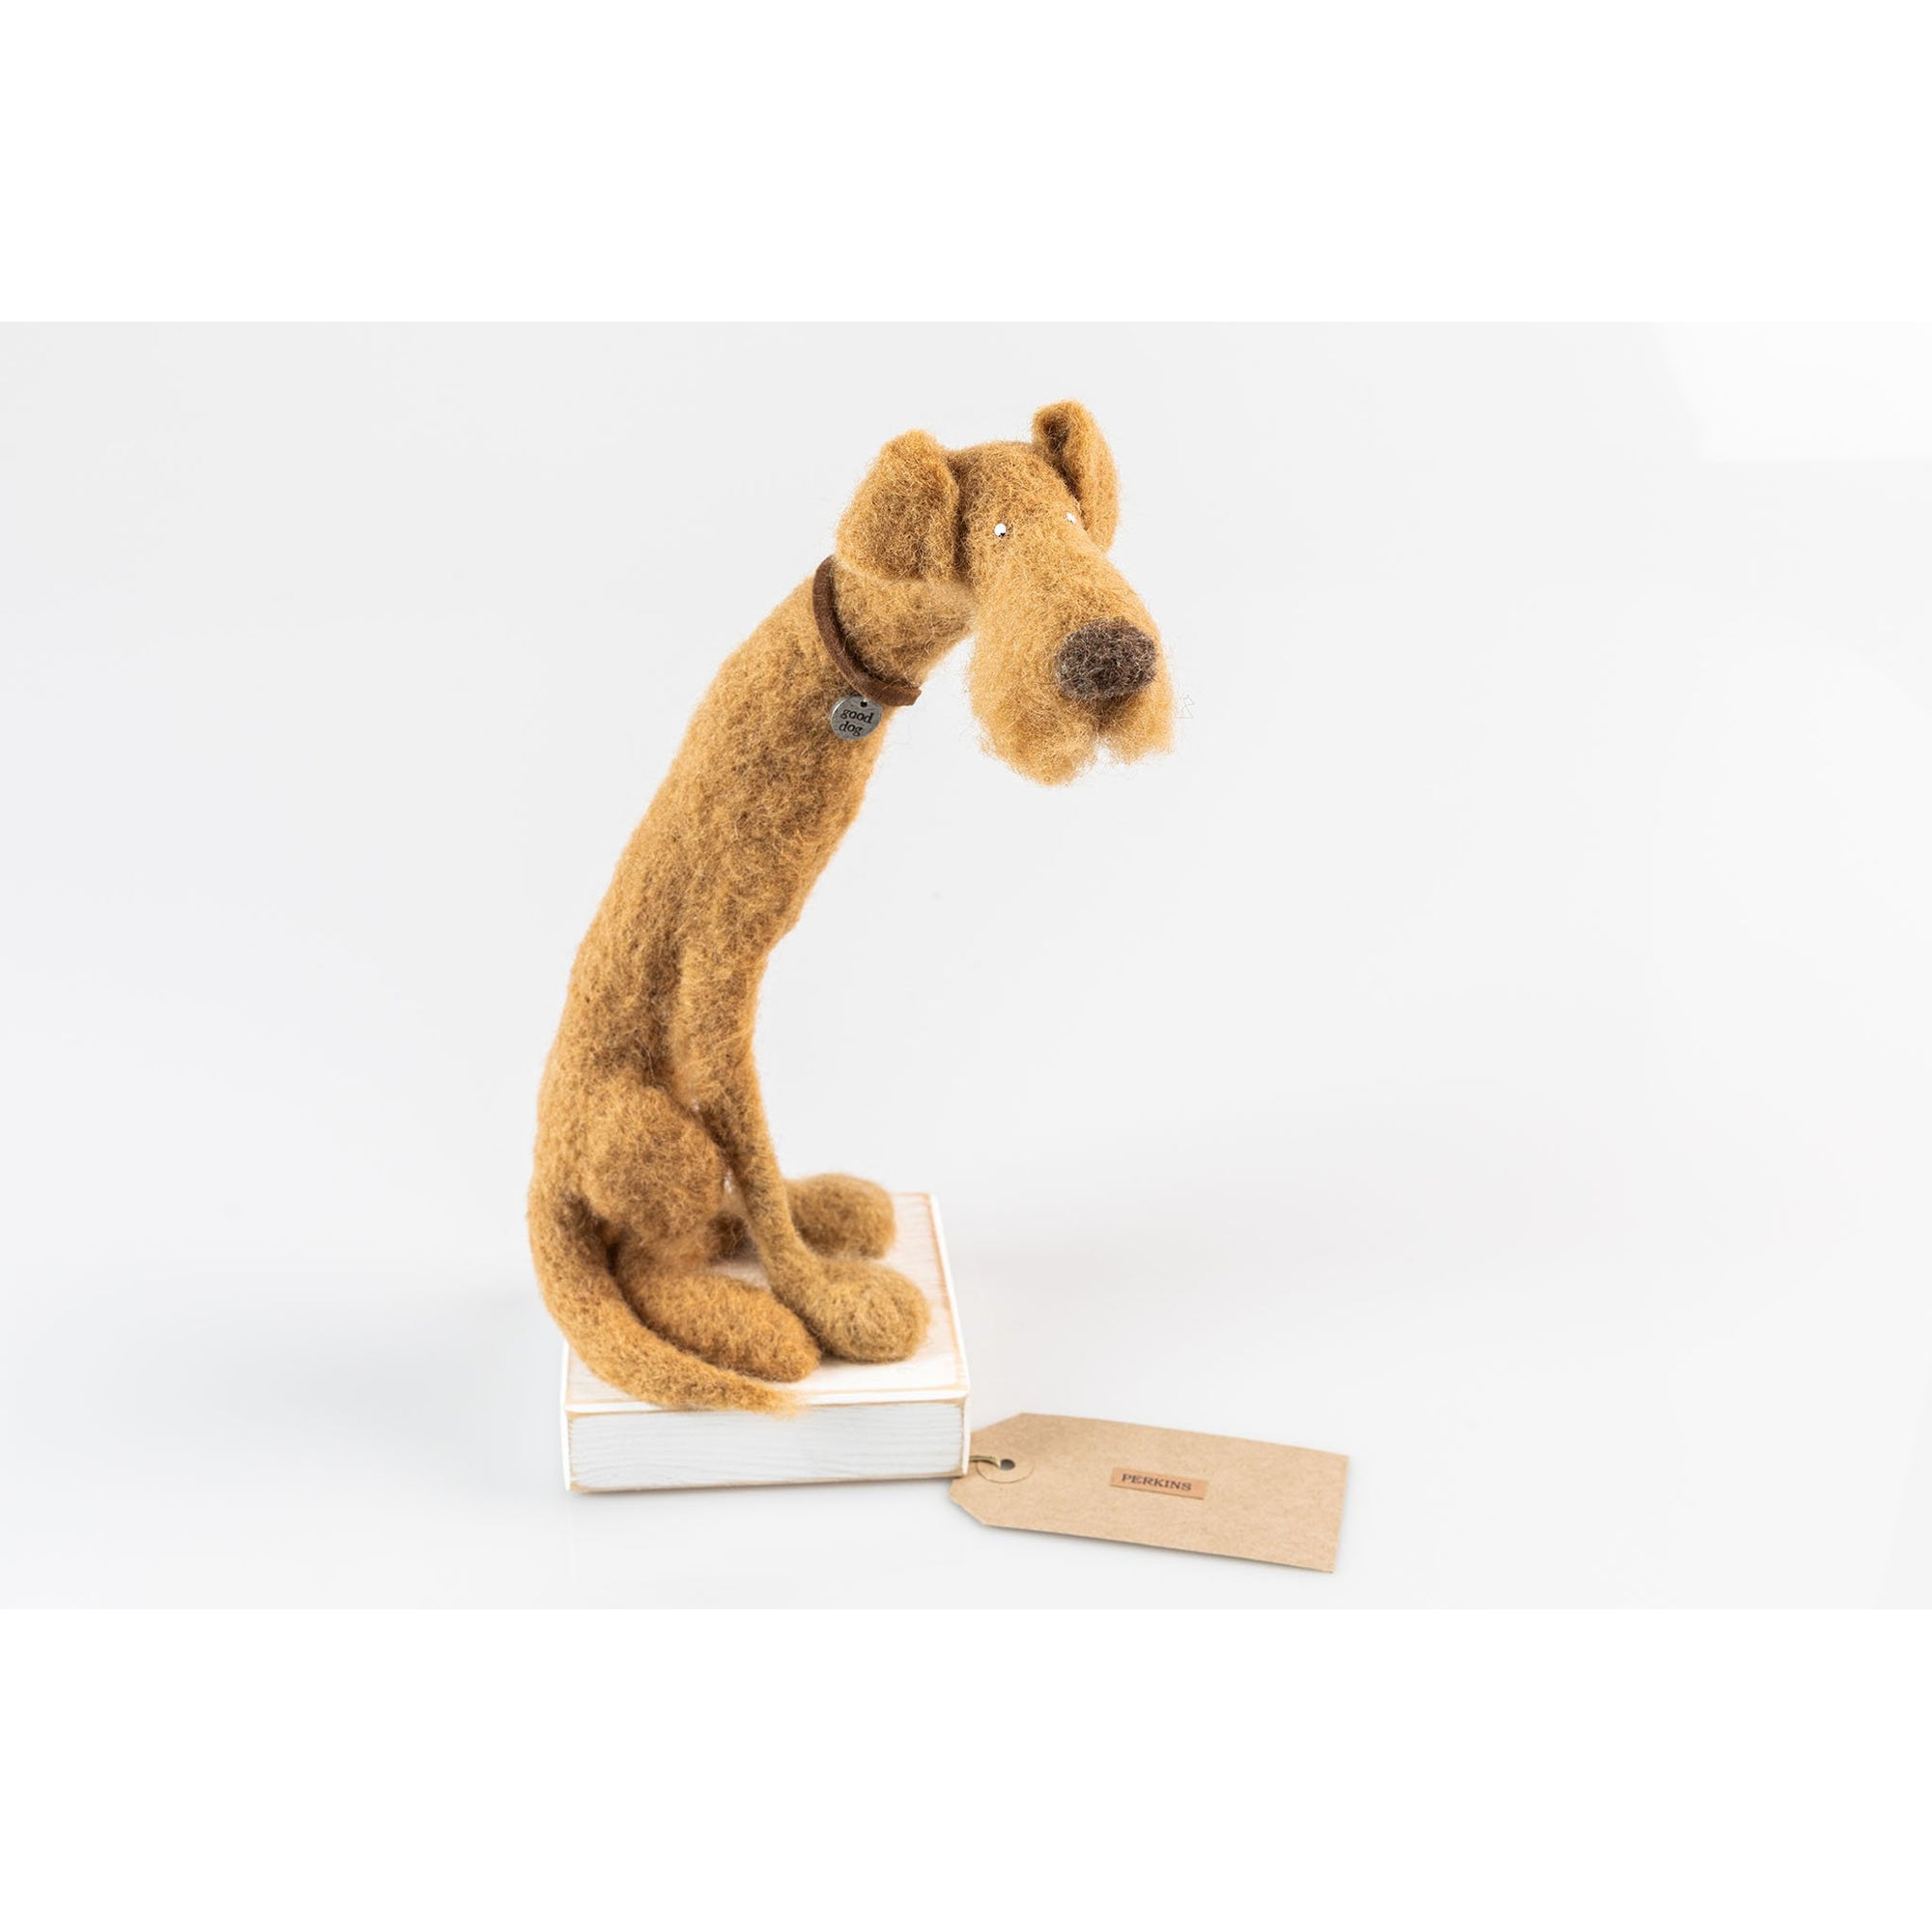 'Perkins' needlefelt dog character created by Kate Toms, available at Padstow Gallery, Cornwall